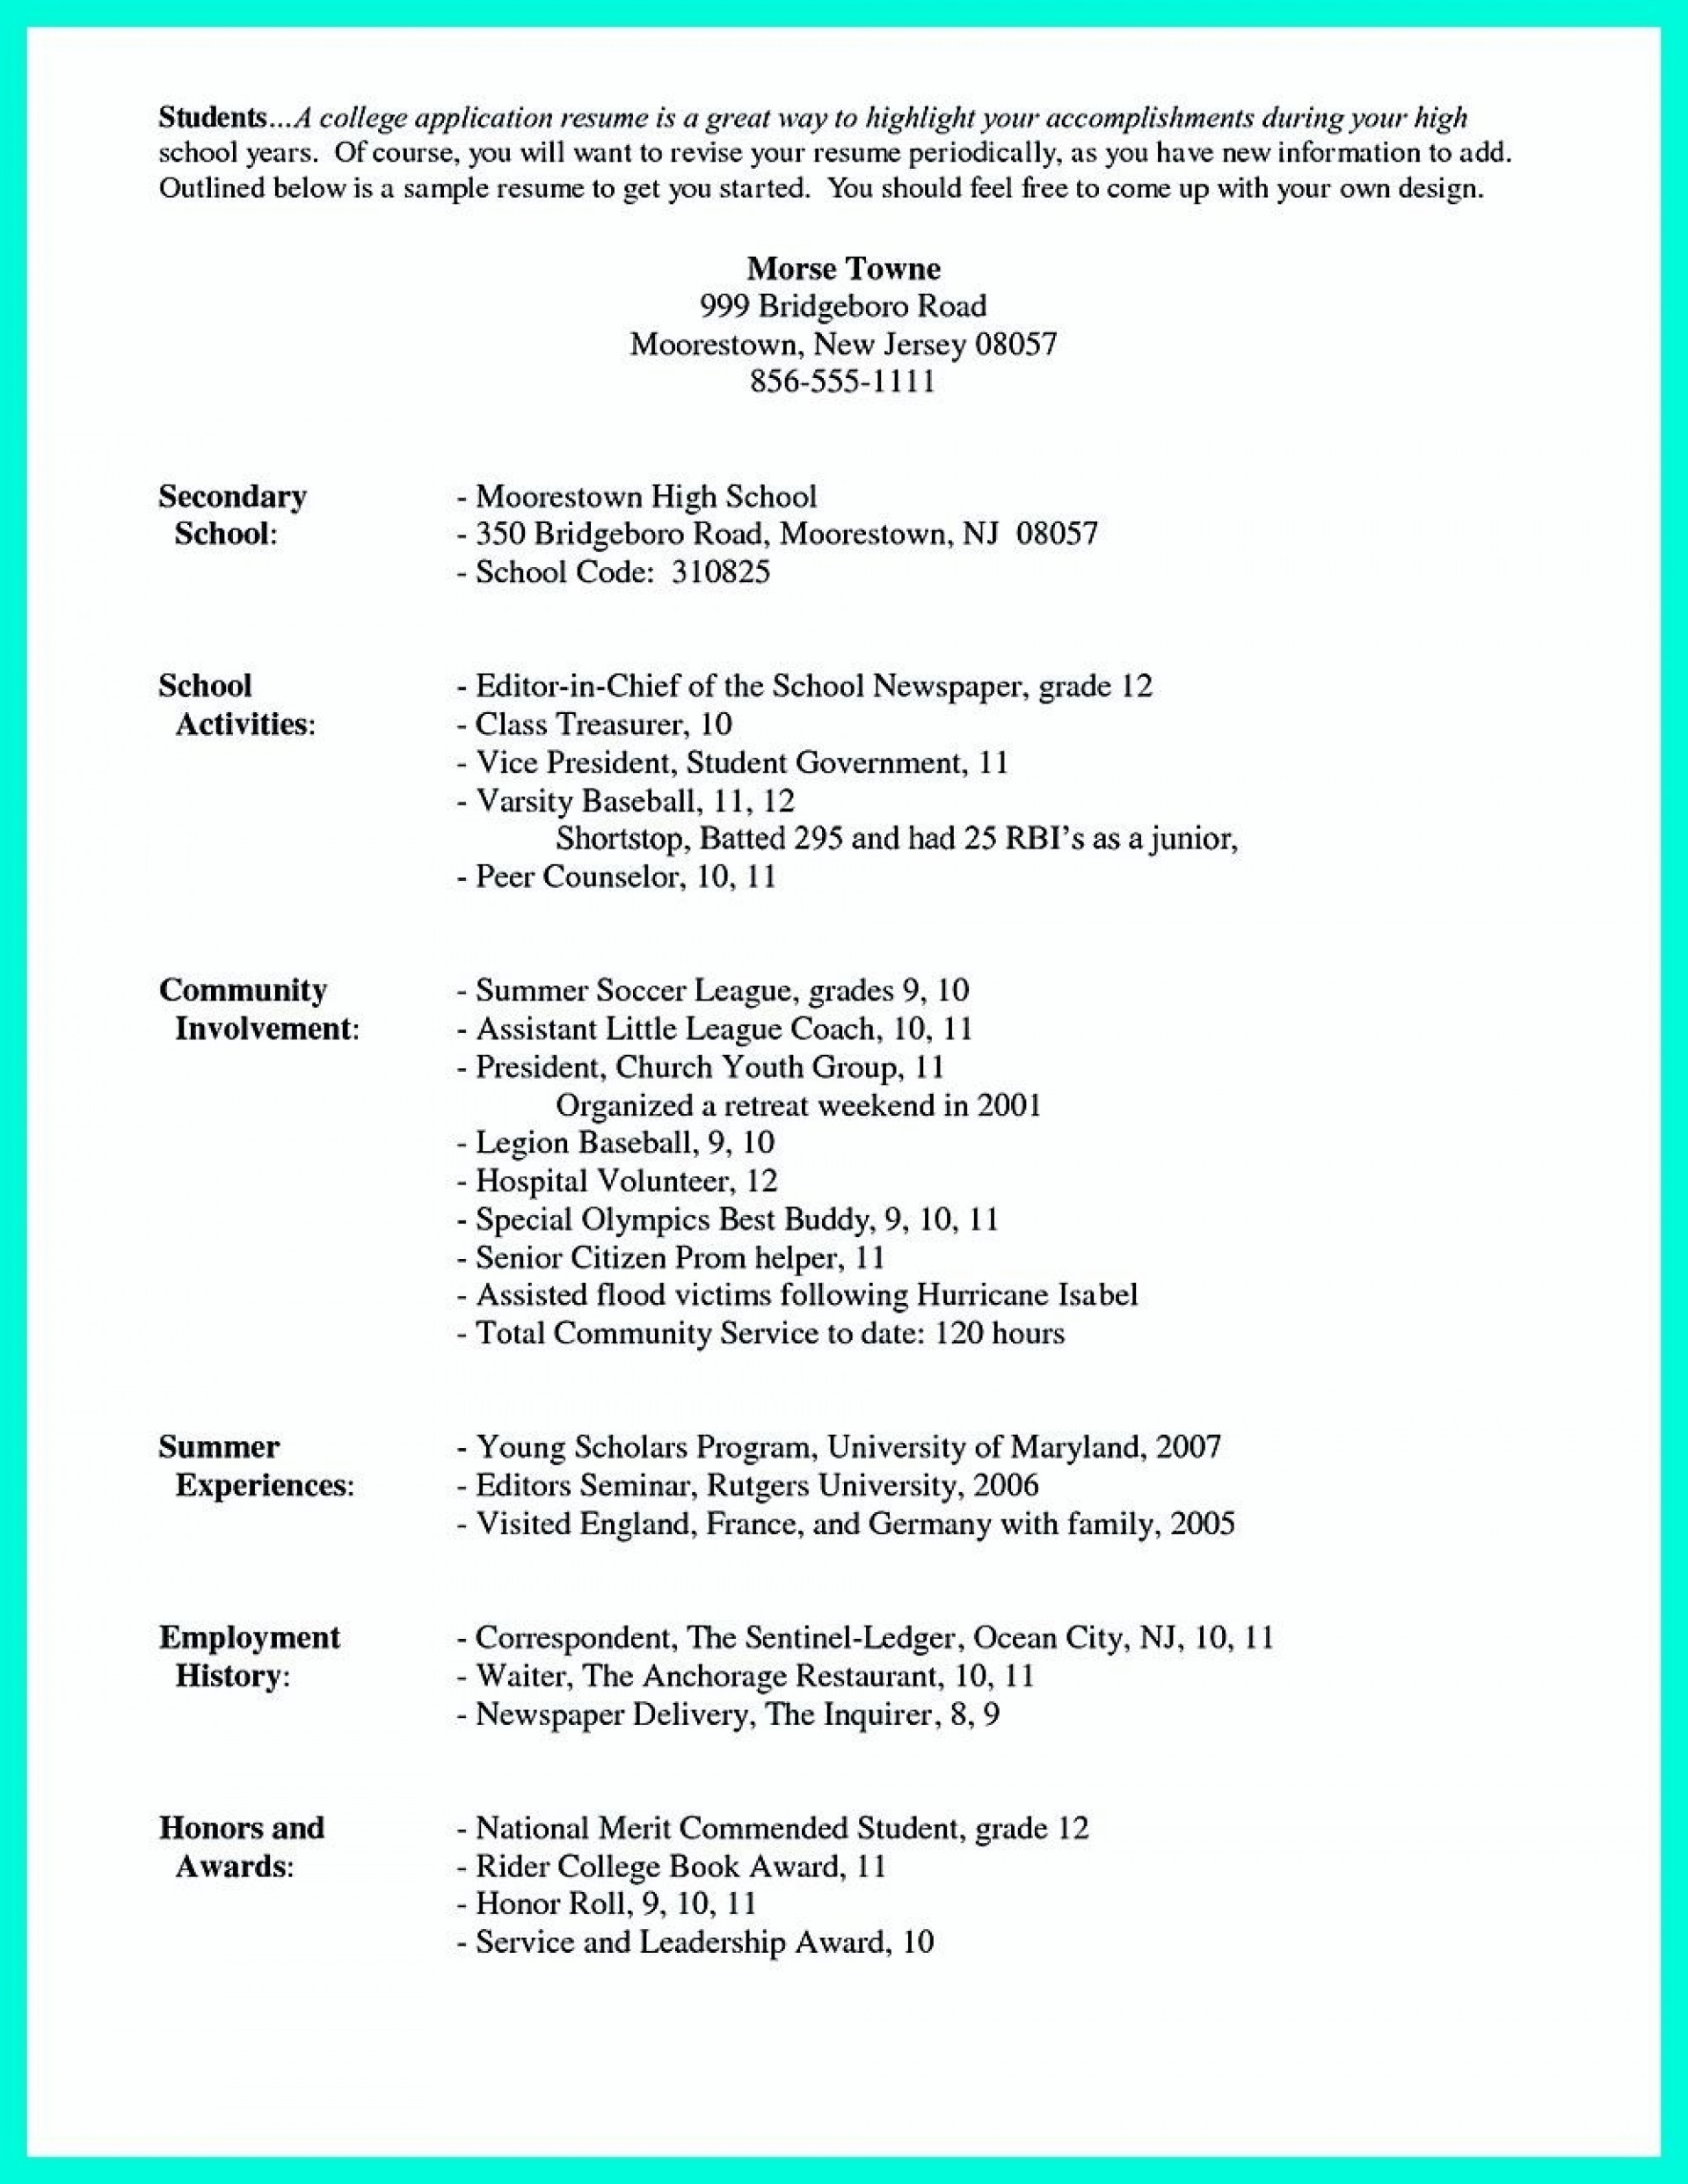 003 Awful College Admission Resume Template Sample  Microsoft Word Application Download1920